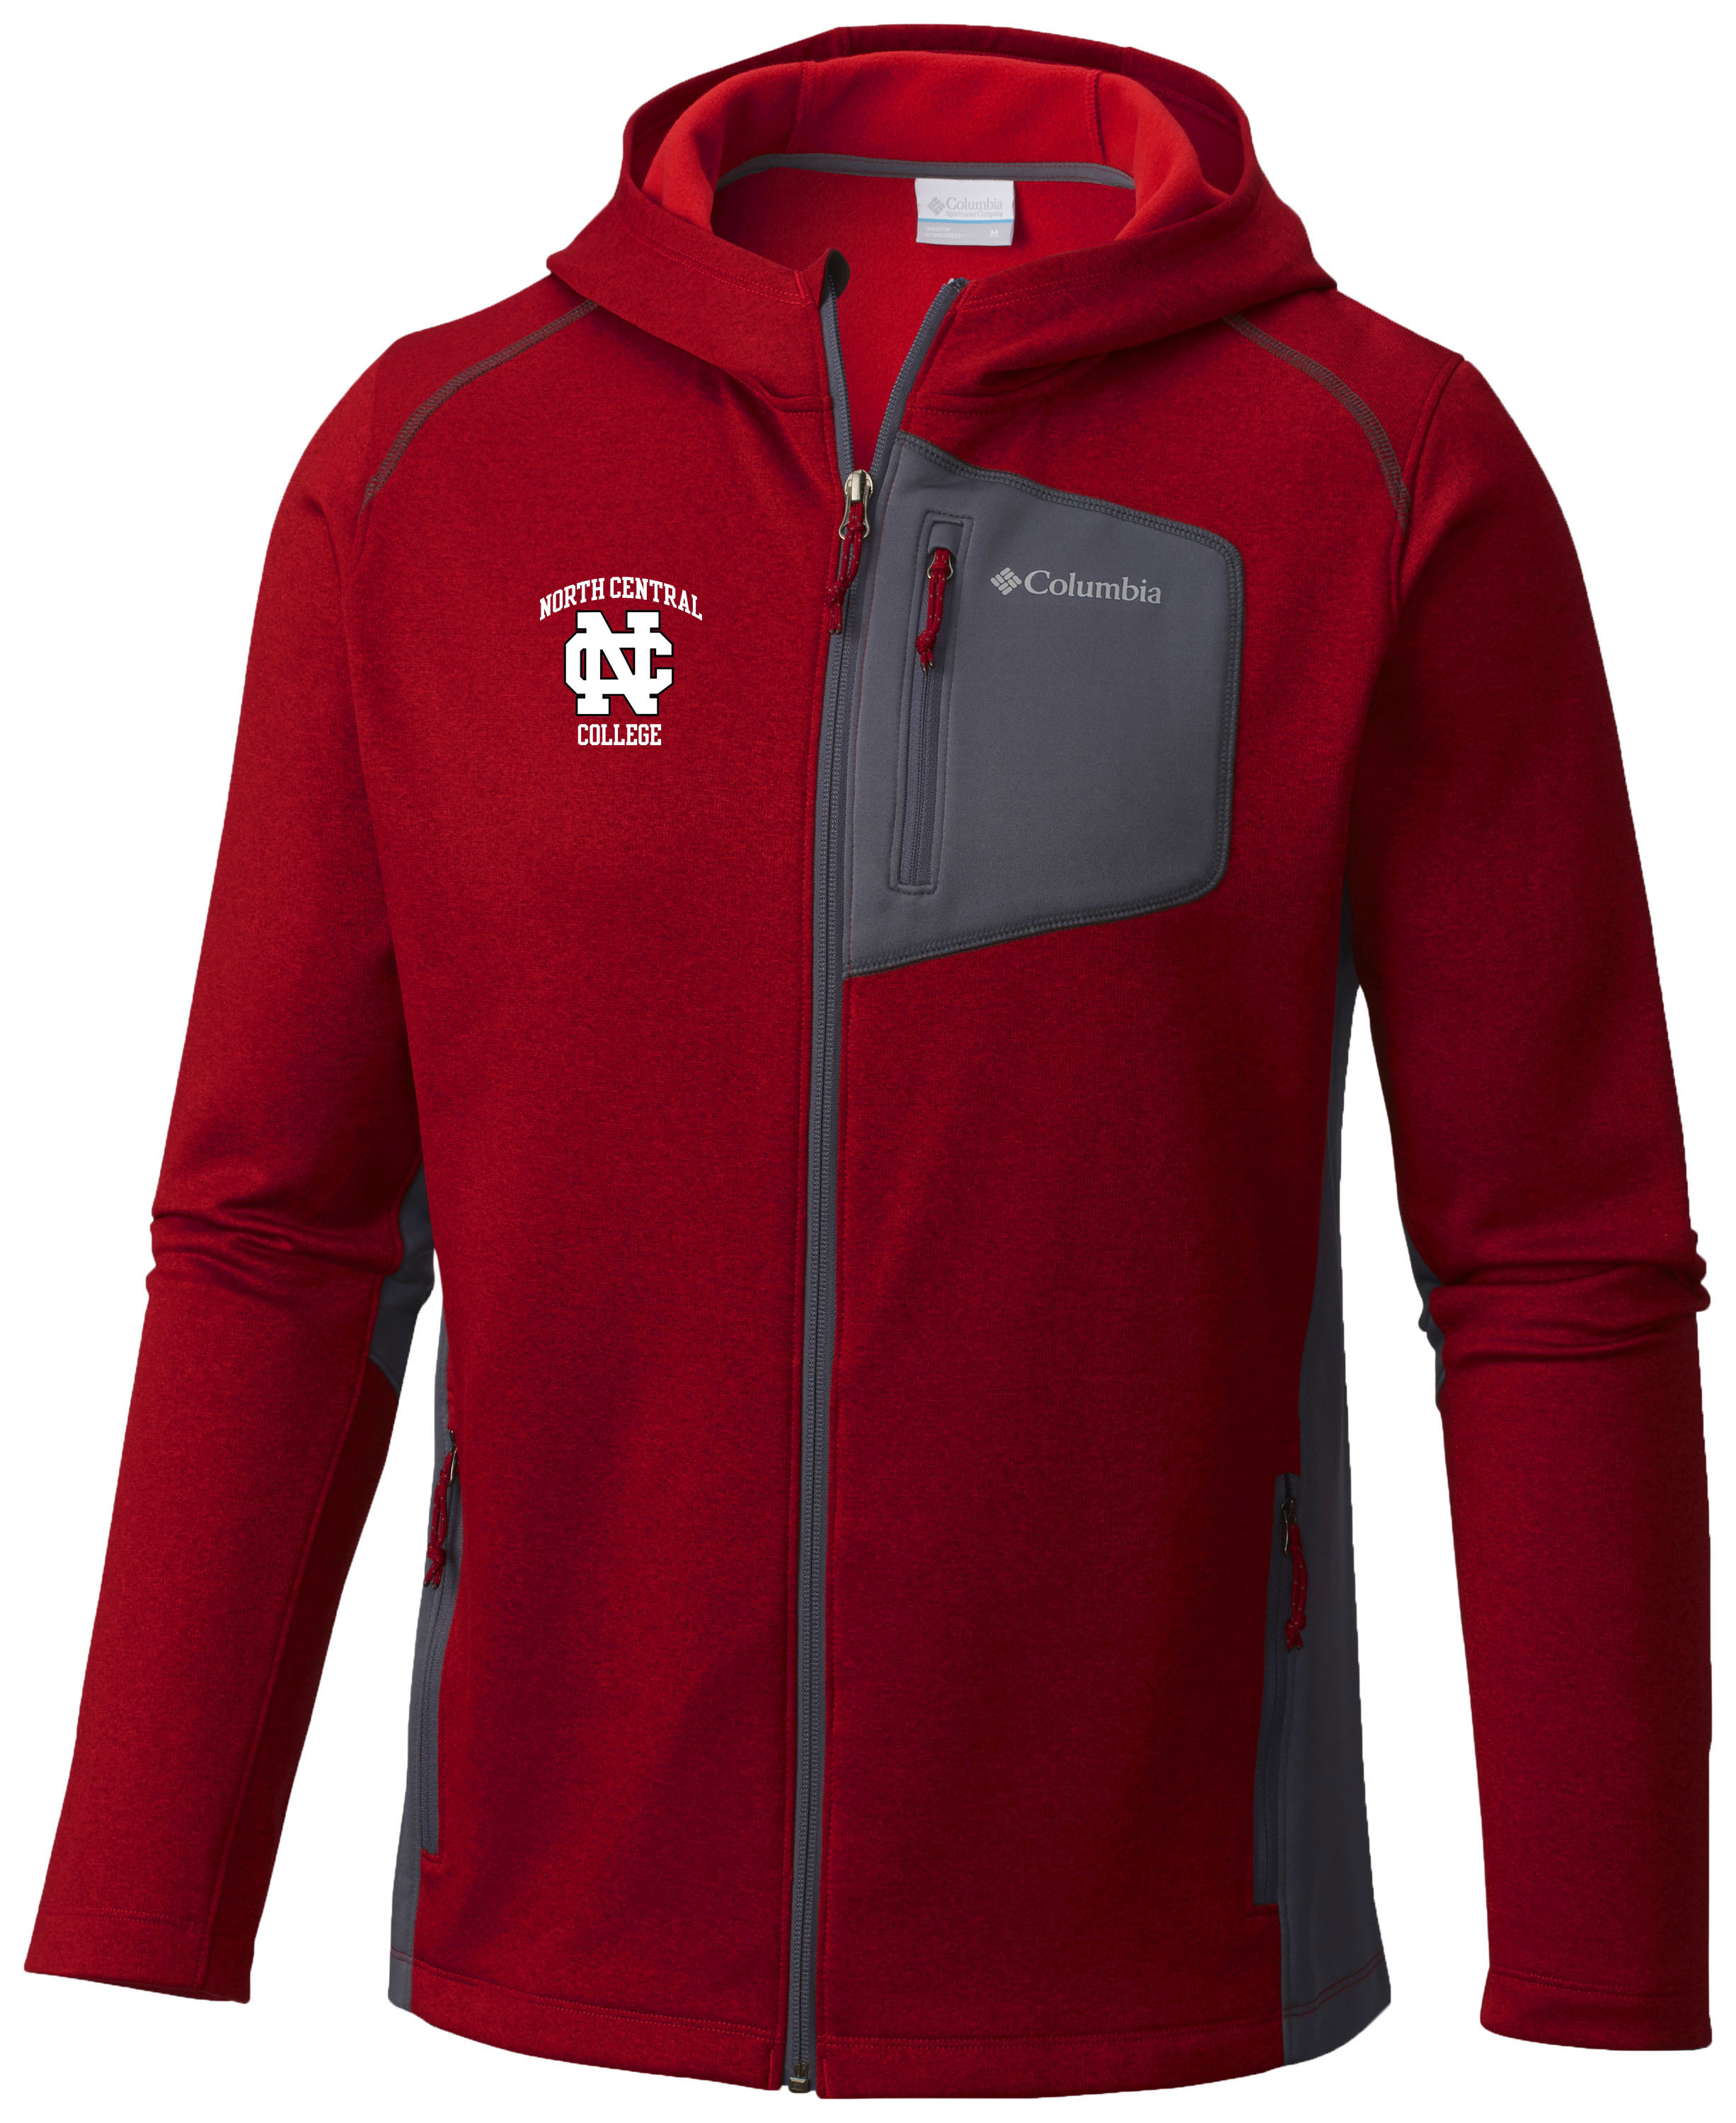 Image for the Clearance - Columbia Jackson Creek Full Zip Hoodie product